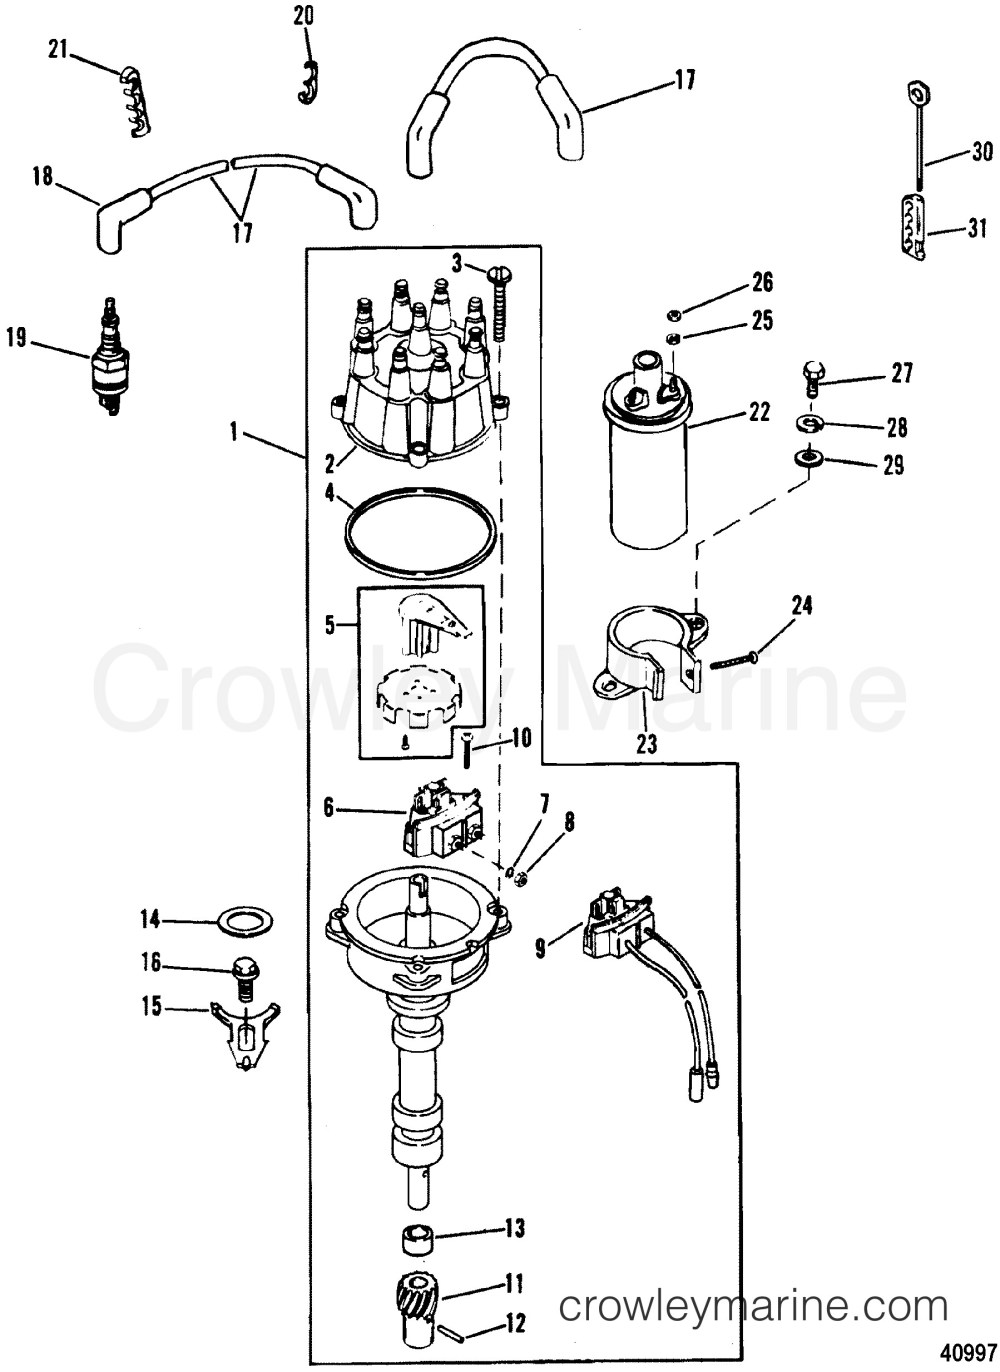 medium resolution of 4 3 mercruiser engine diagram distributor ignition ponents thunderbolt iv ignition 1988 of